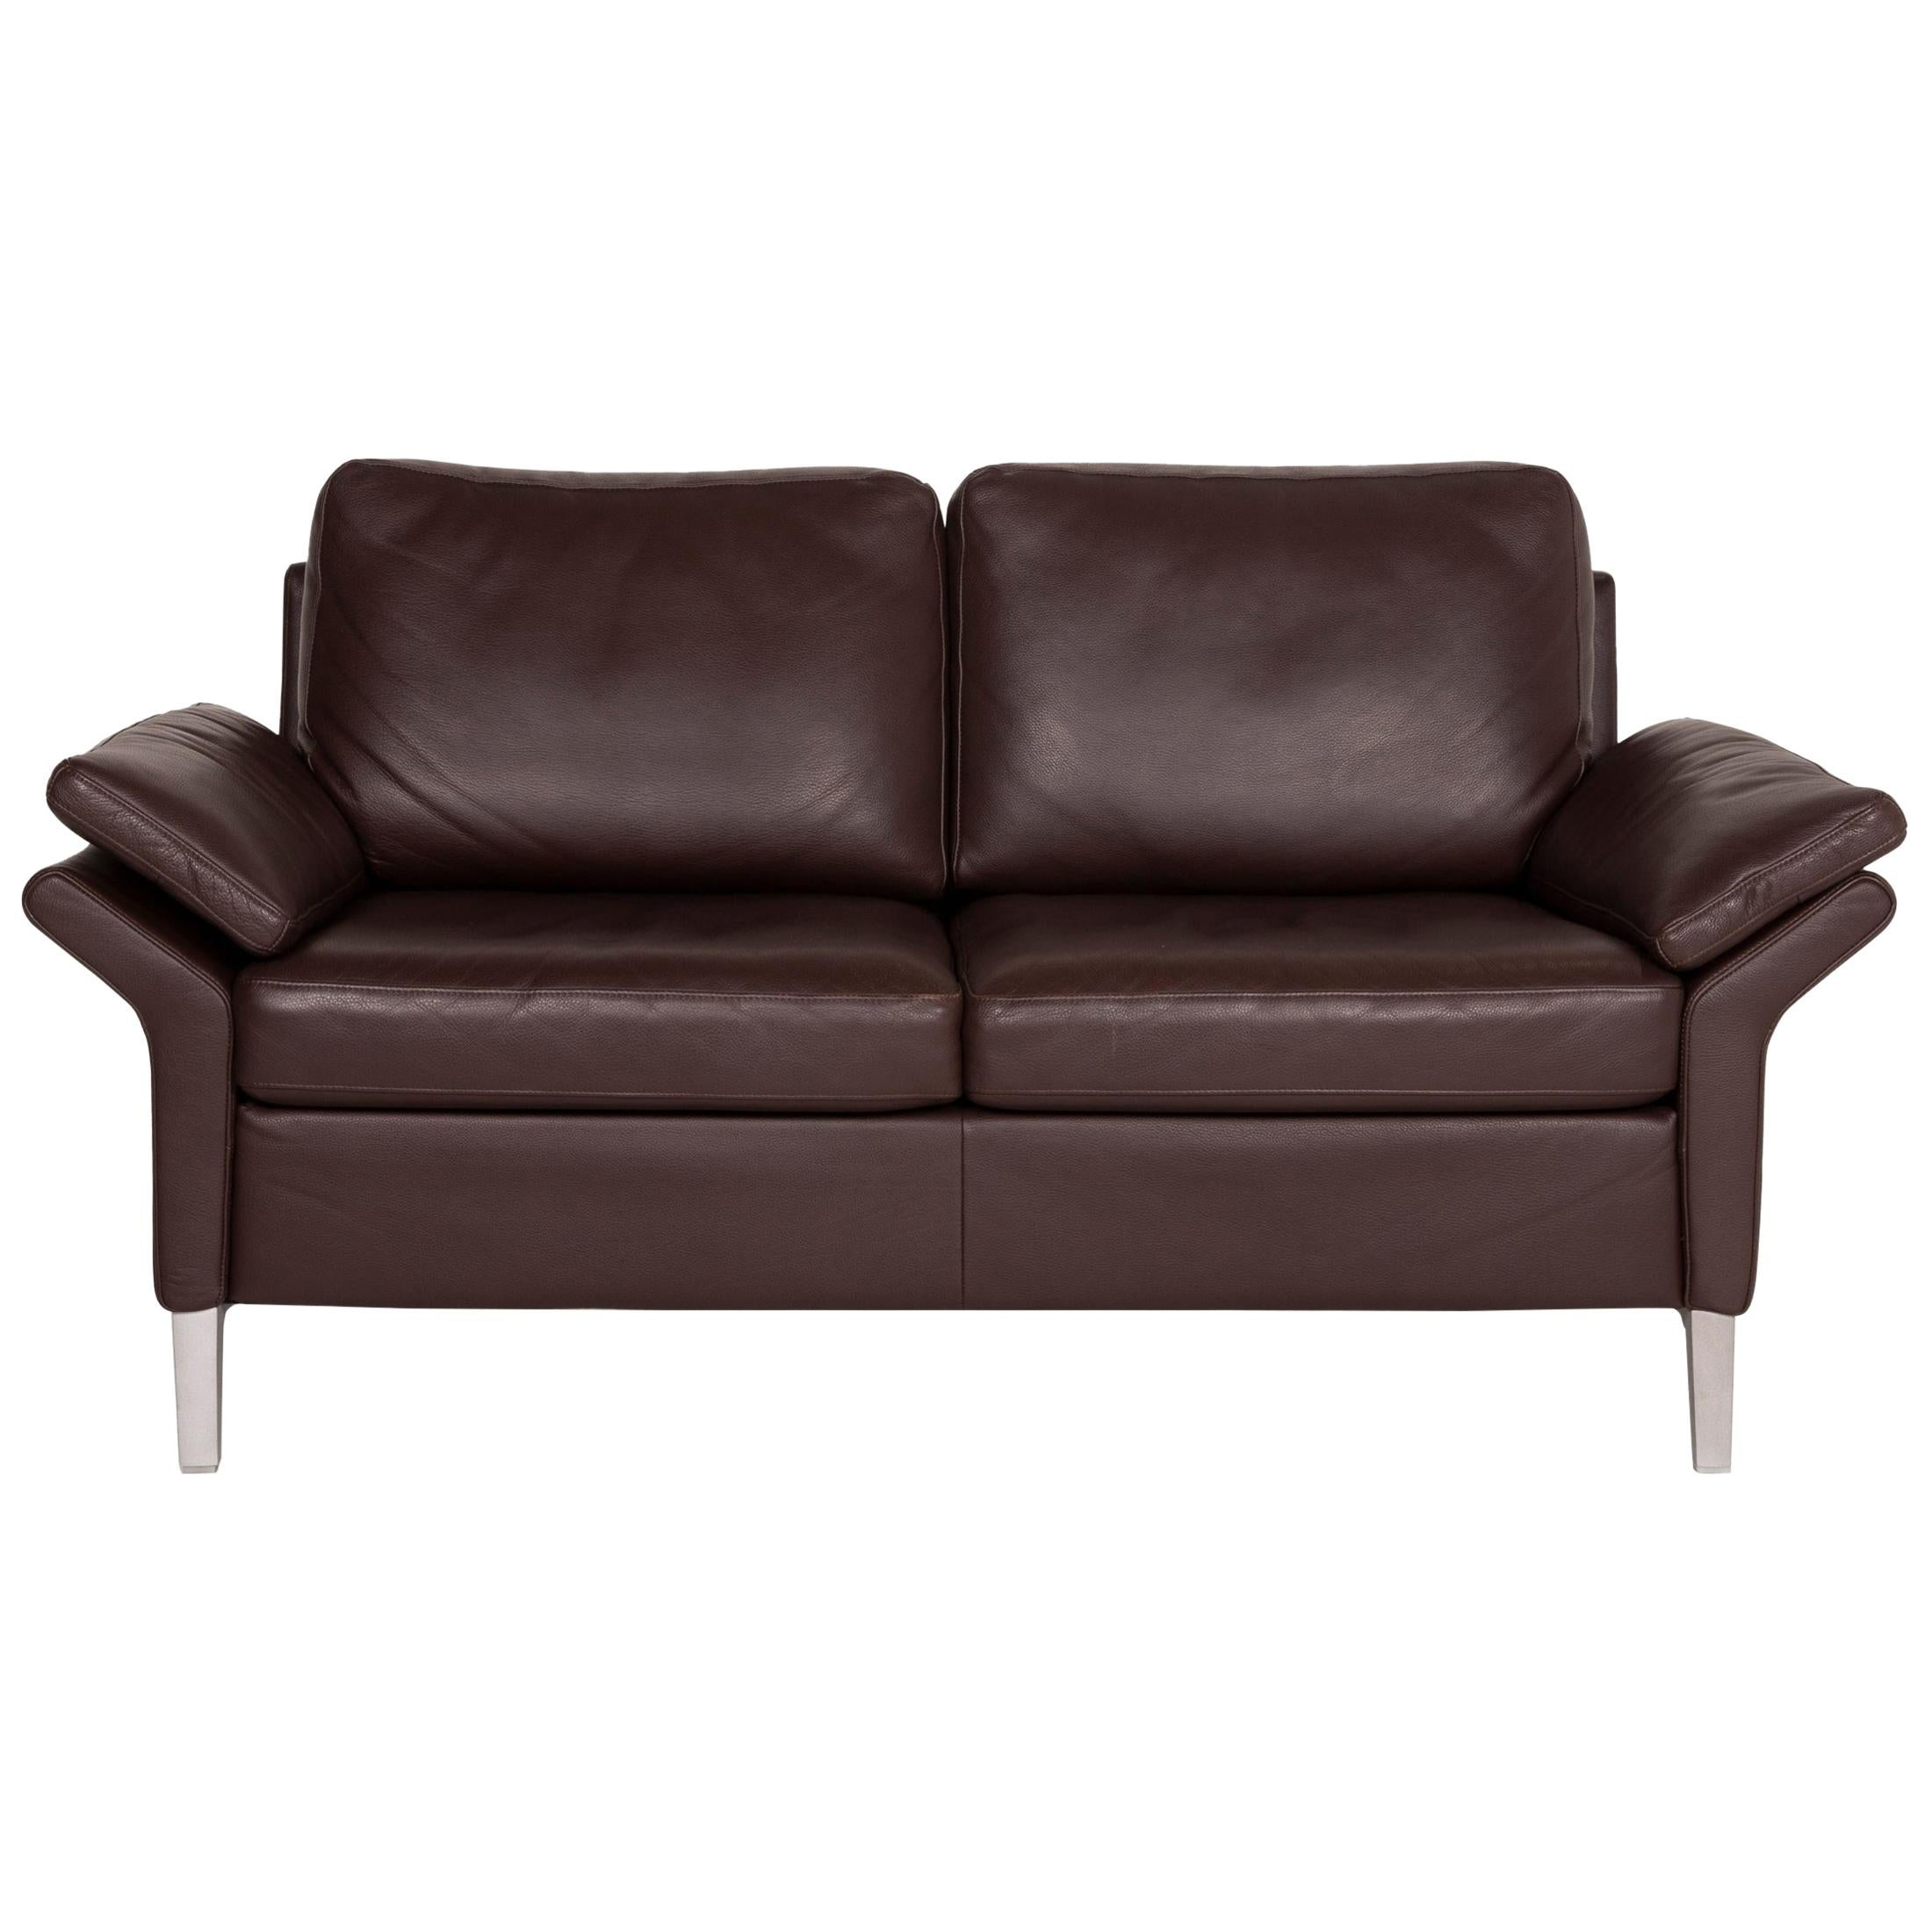 Rolf Benz 3300 Leather Sofa Brown Two-Seater